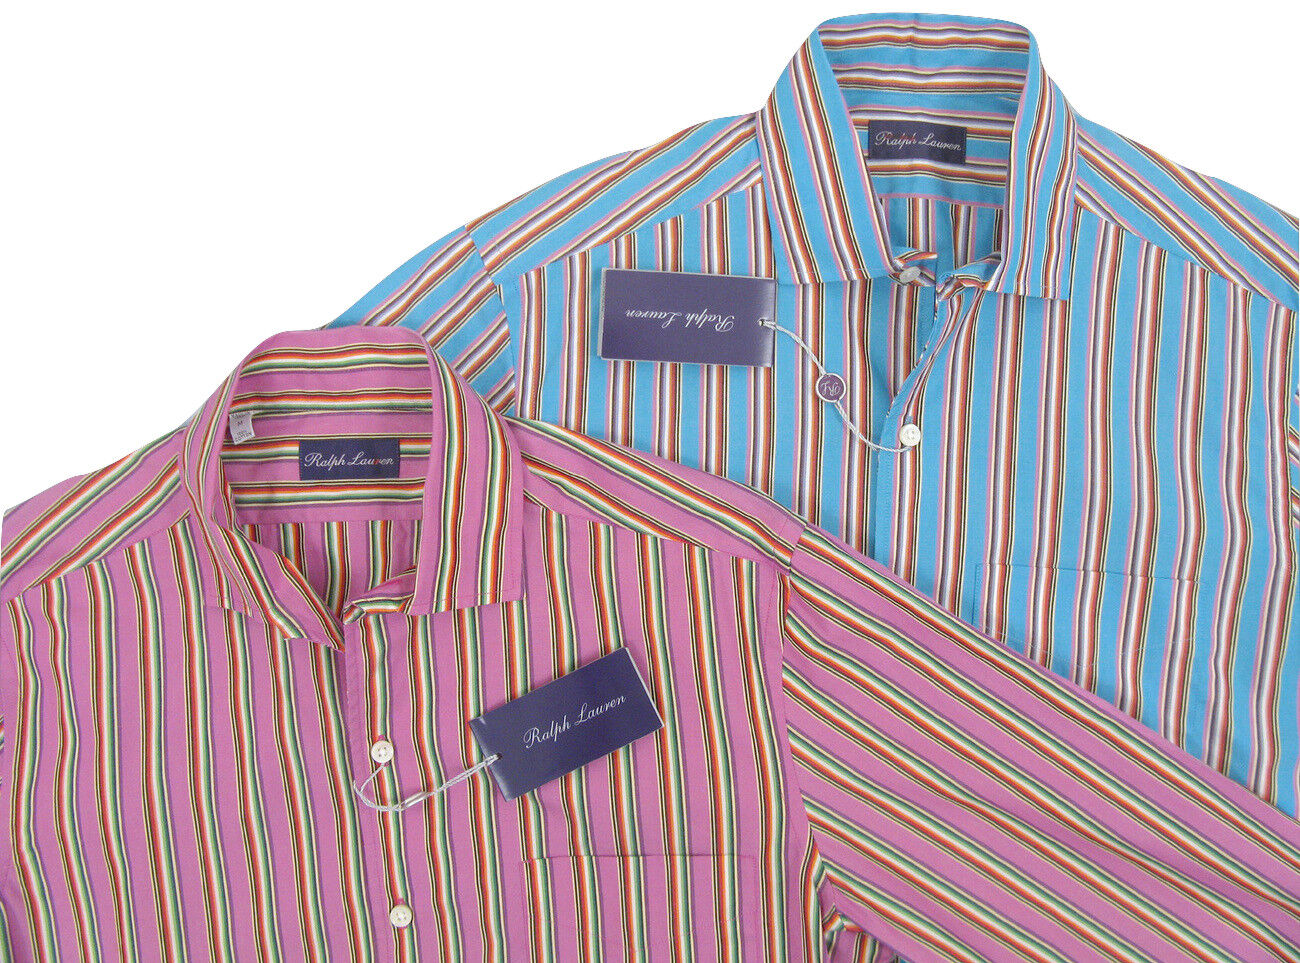 NEW  Ralph Lauren Purple Label Shirt   Pink or bluee  colorful Stripes